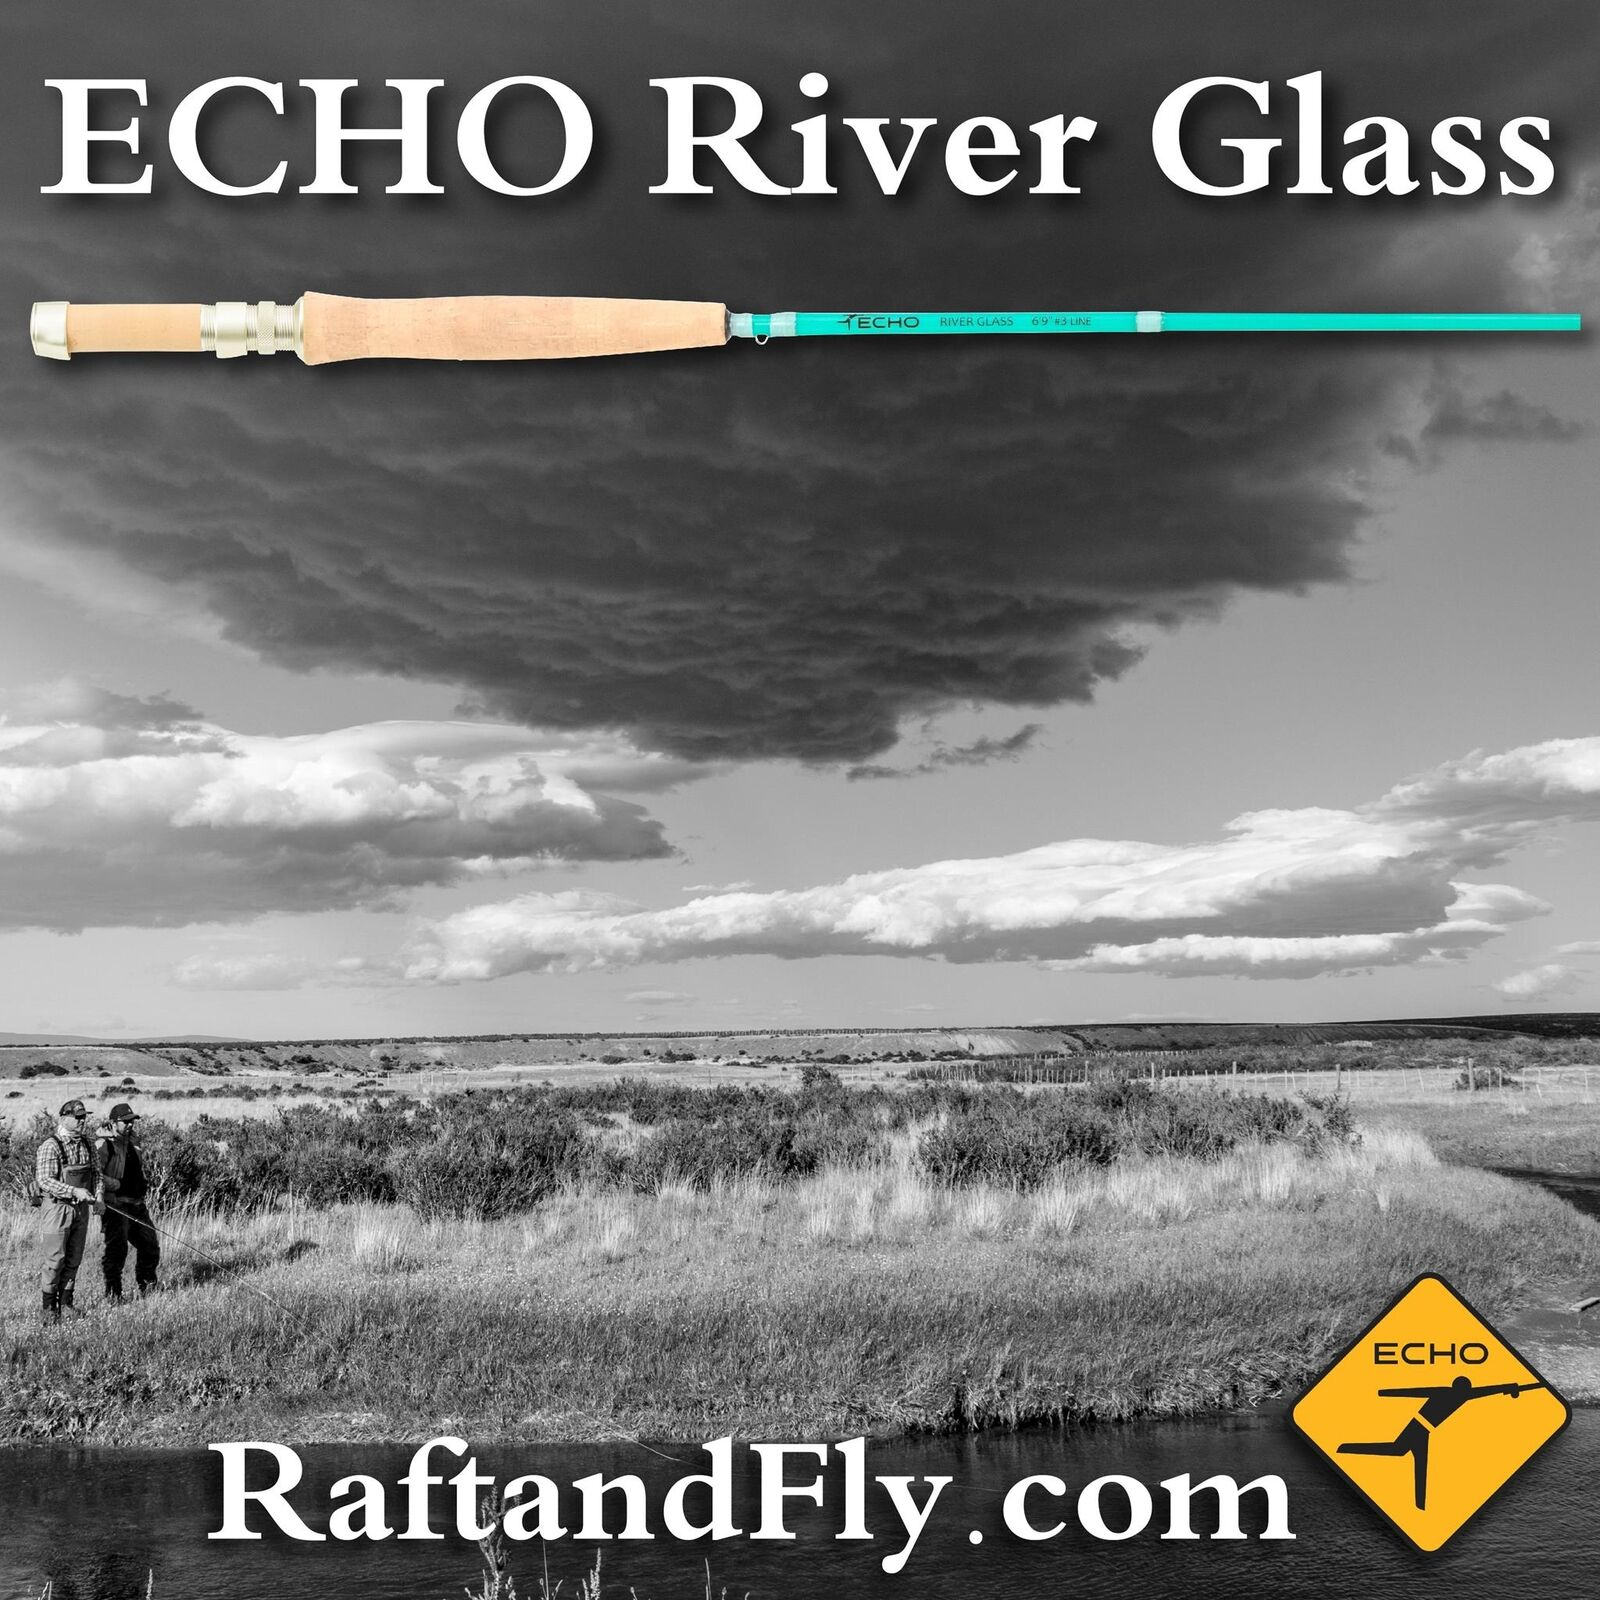 ECHO River Glass 4wt Glacier 8'0  Lifetime Warranty  FREE SHIPPING